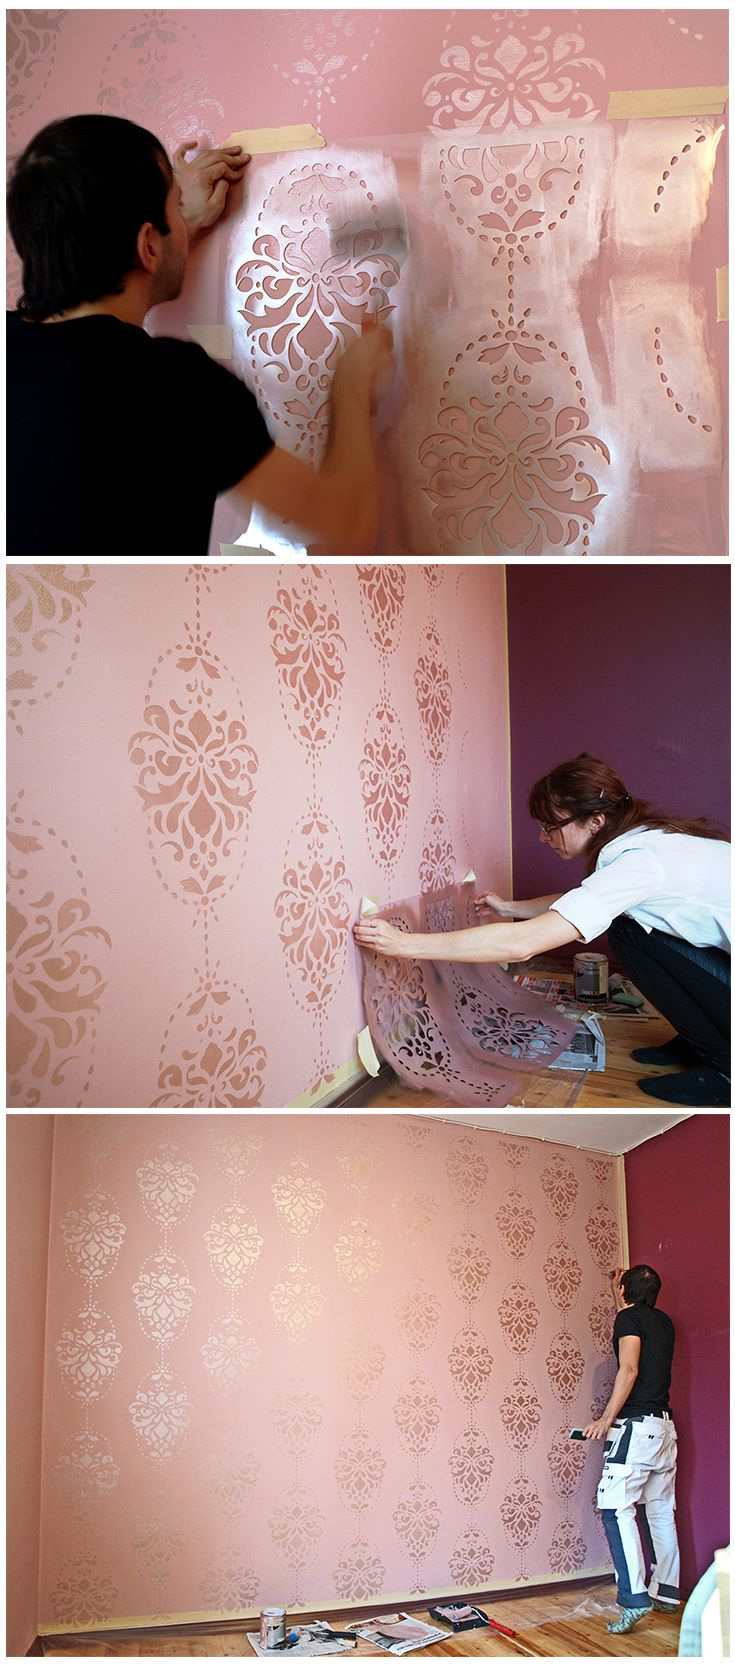 Check out the gloss-on-matte paint pattern trick!